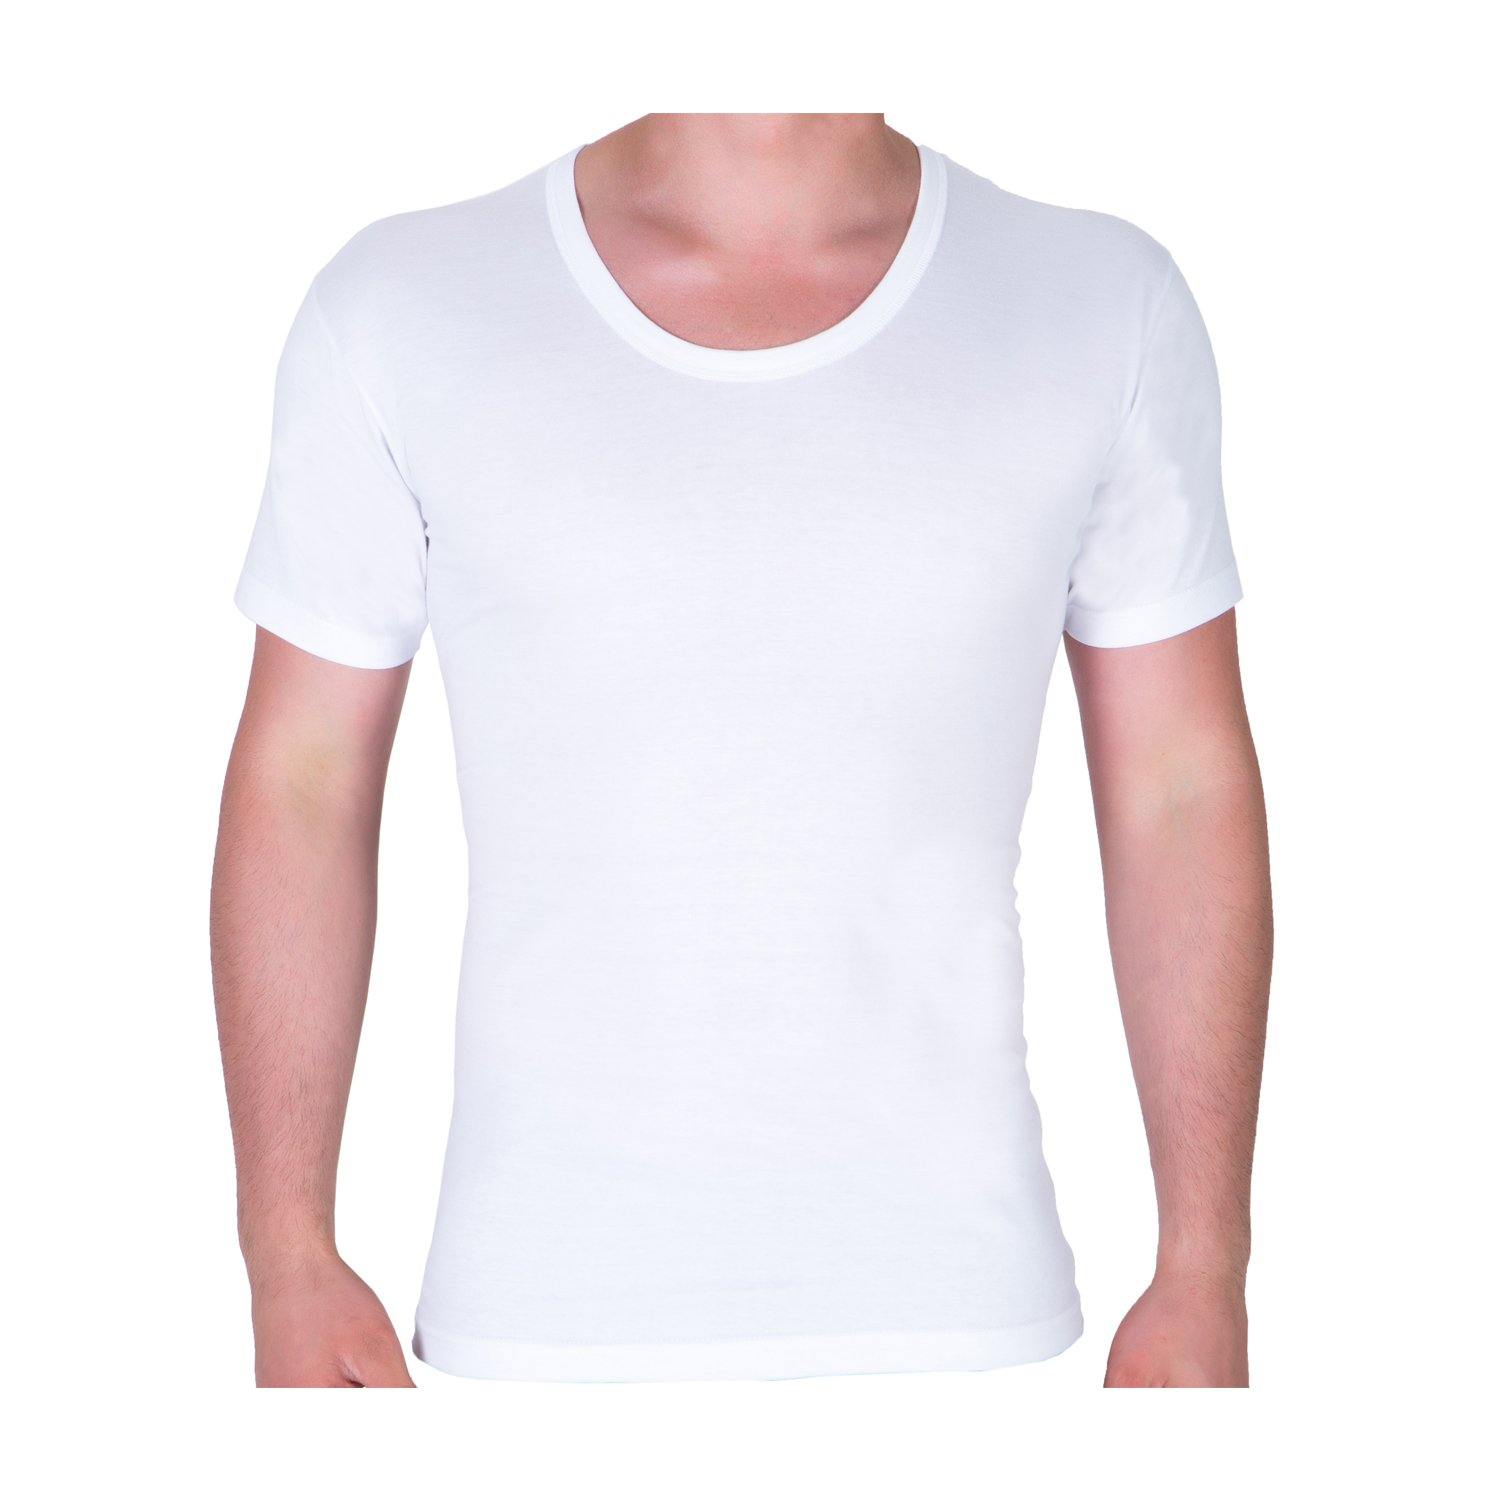 96119d46633 Super Soft Combed Cotton Crew Neck Mens Undershirt, 3-Pack Tagless White T  Shirts for Men by Klano Undershirts at Amazon Men's Clothing store: